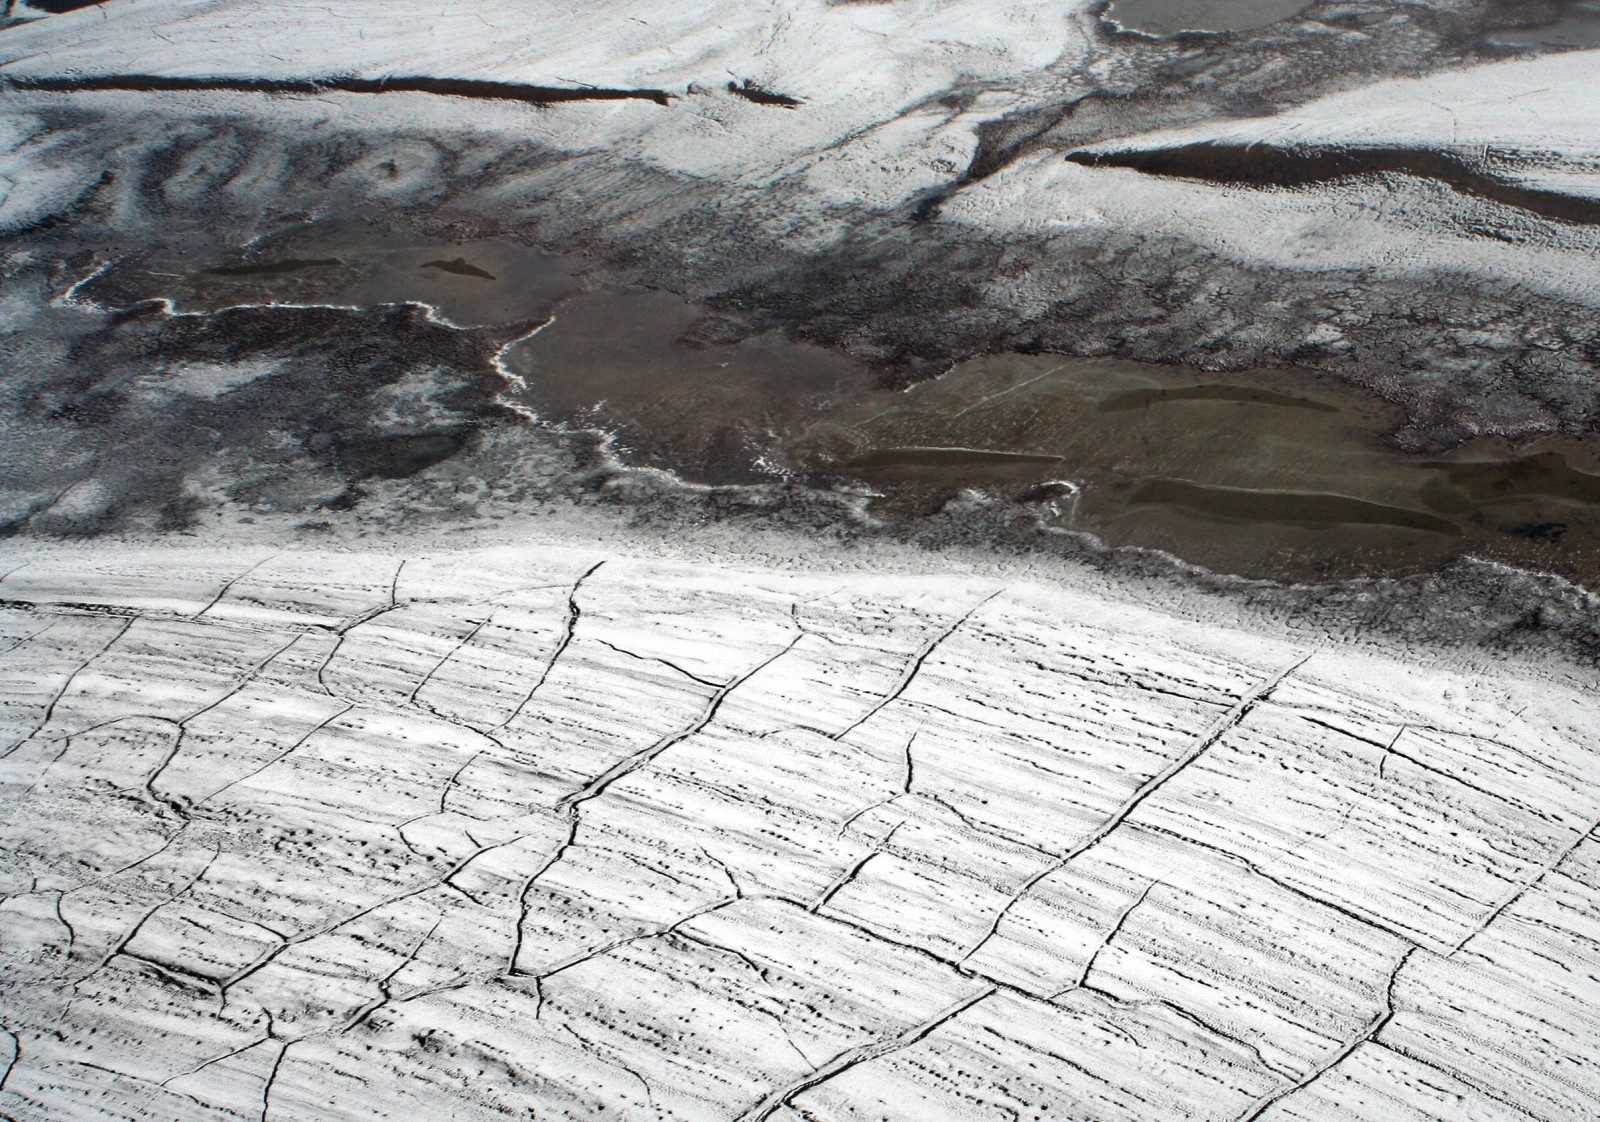 Permafrost fever, do we need a doctor?